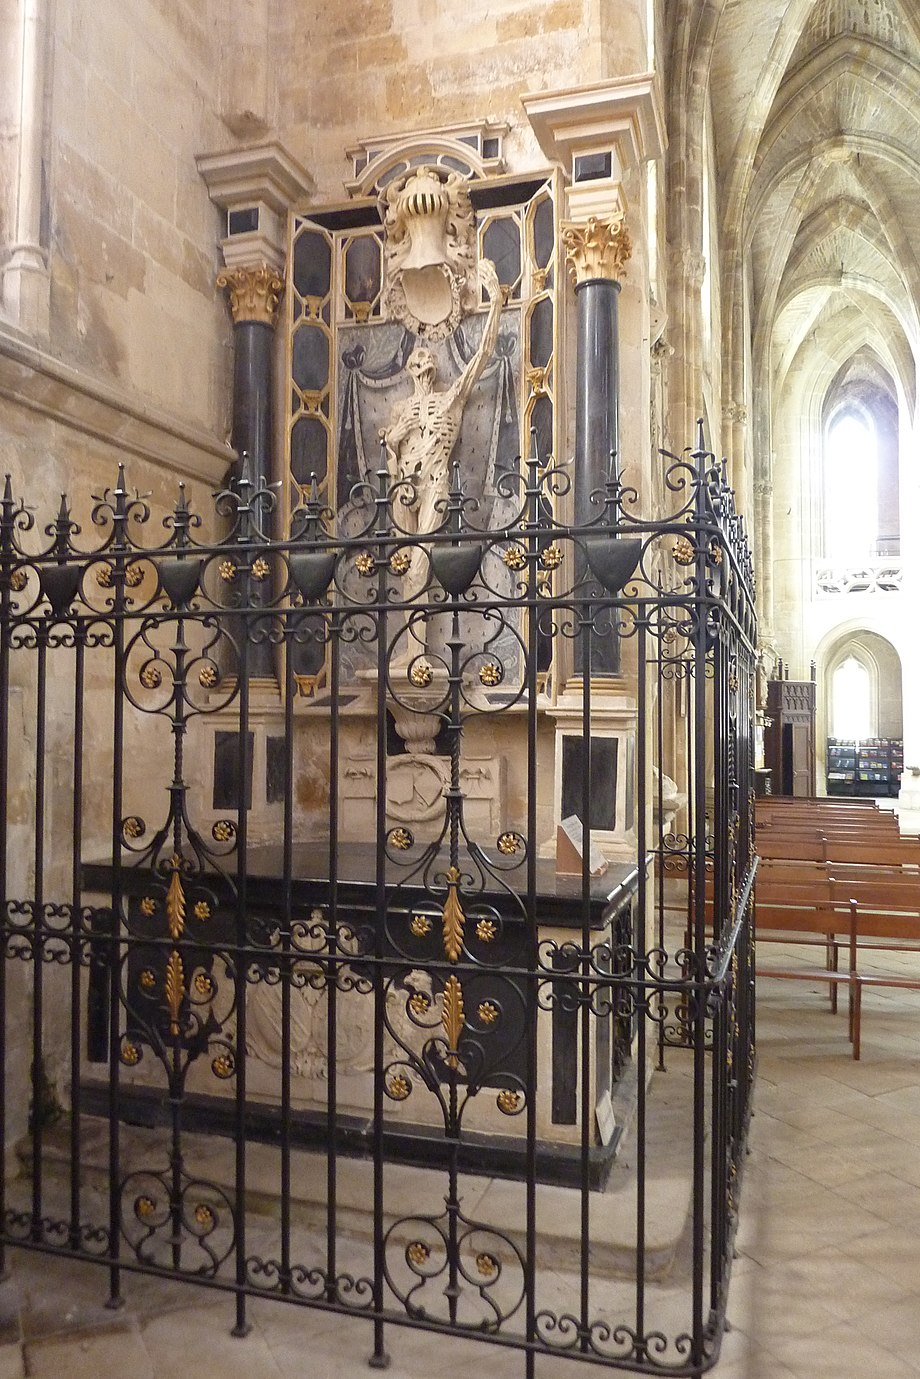 Full view with black marble columns and altarpiece Bar-le-Duc - Eglise Saint-Etienne - Transi de Rene de Chalon.JPG